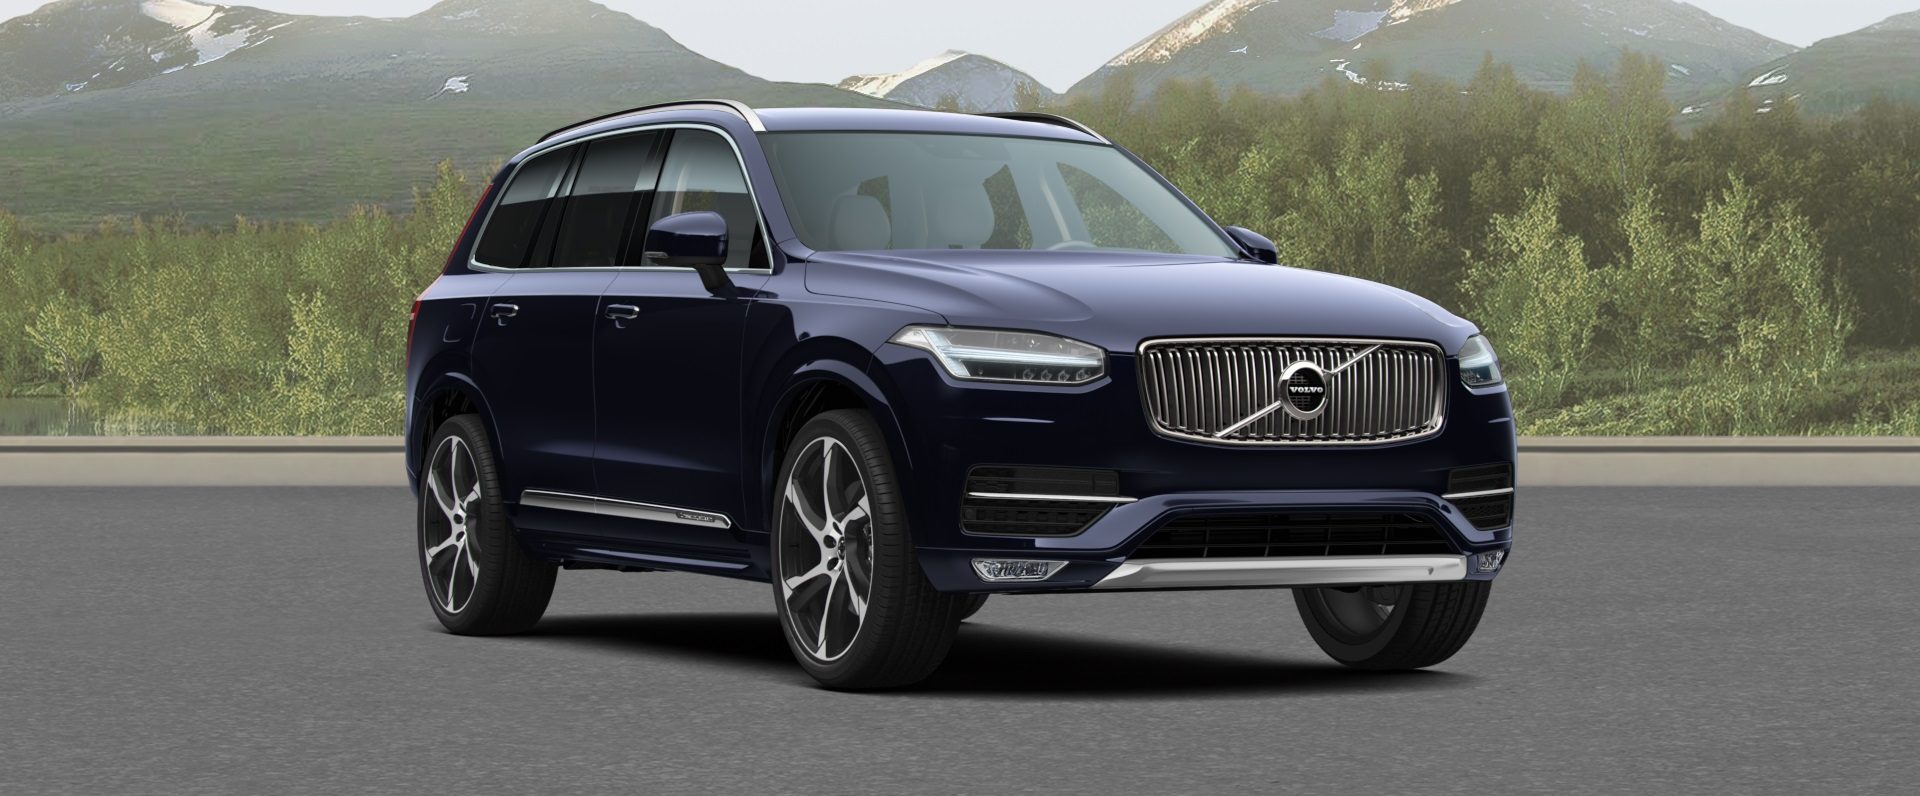 essai volvo xc90 le renouveau le billet auto passion. Black Bedroom Furniture Sets. Home Design Ideas